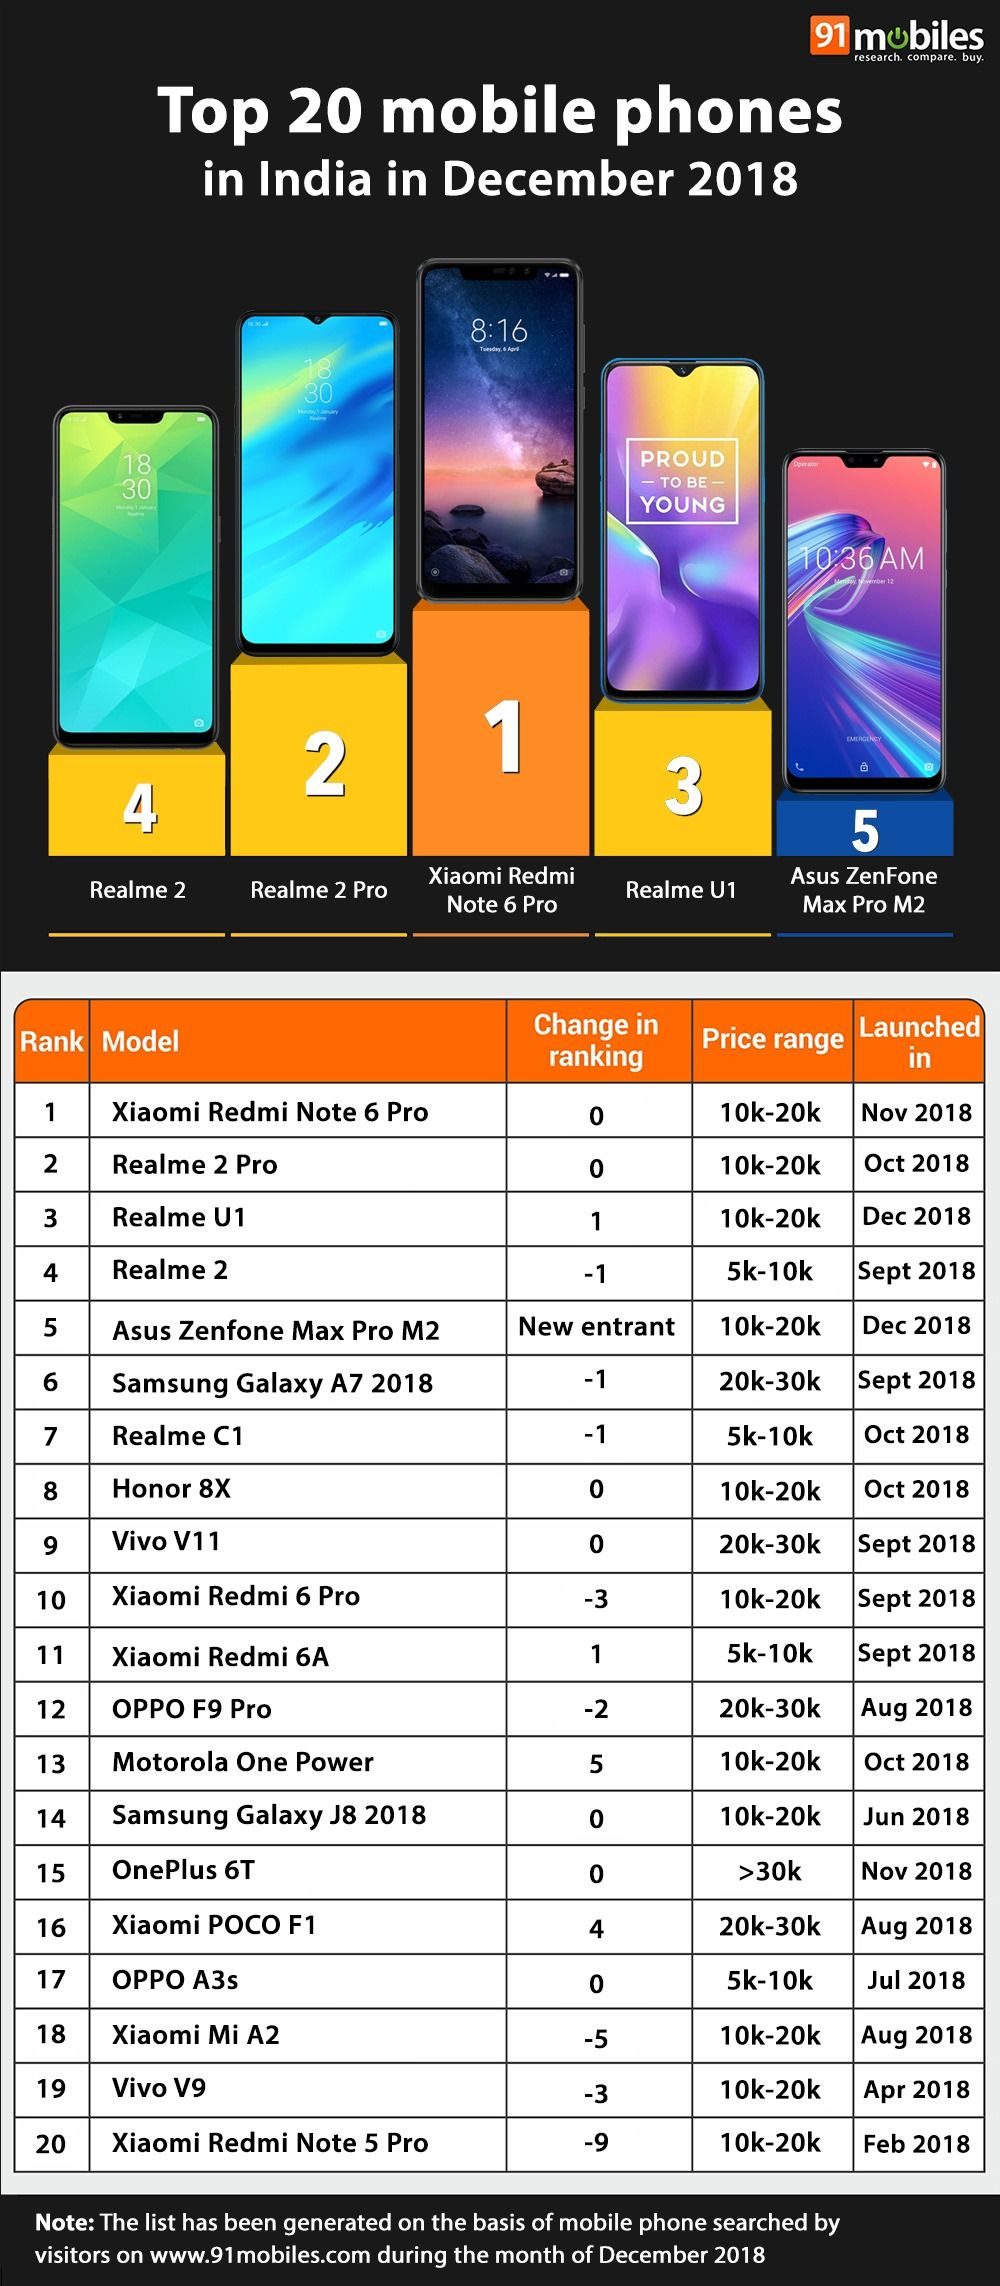 Top 20 mobile phones in India in December 2018 - 91mobiles